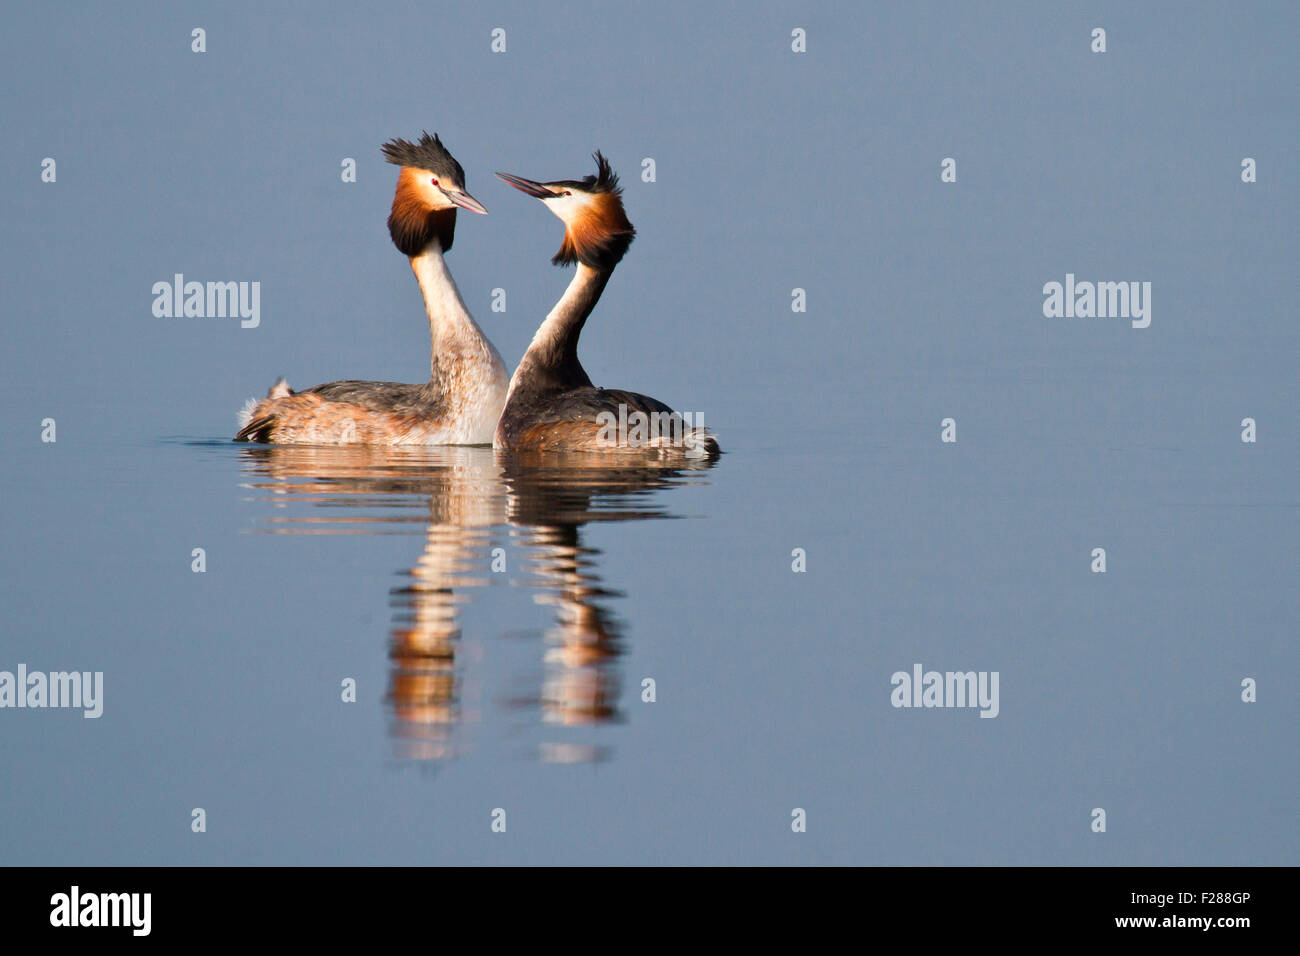 Courting Great Crested Grebes (Podiceps cristatus), Hesse, Germany Stock Photo